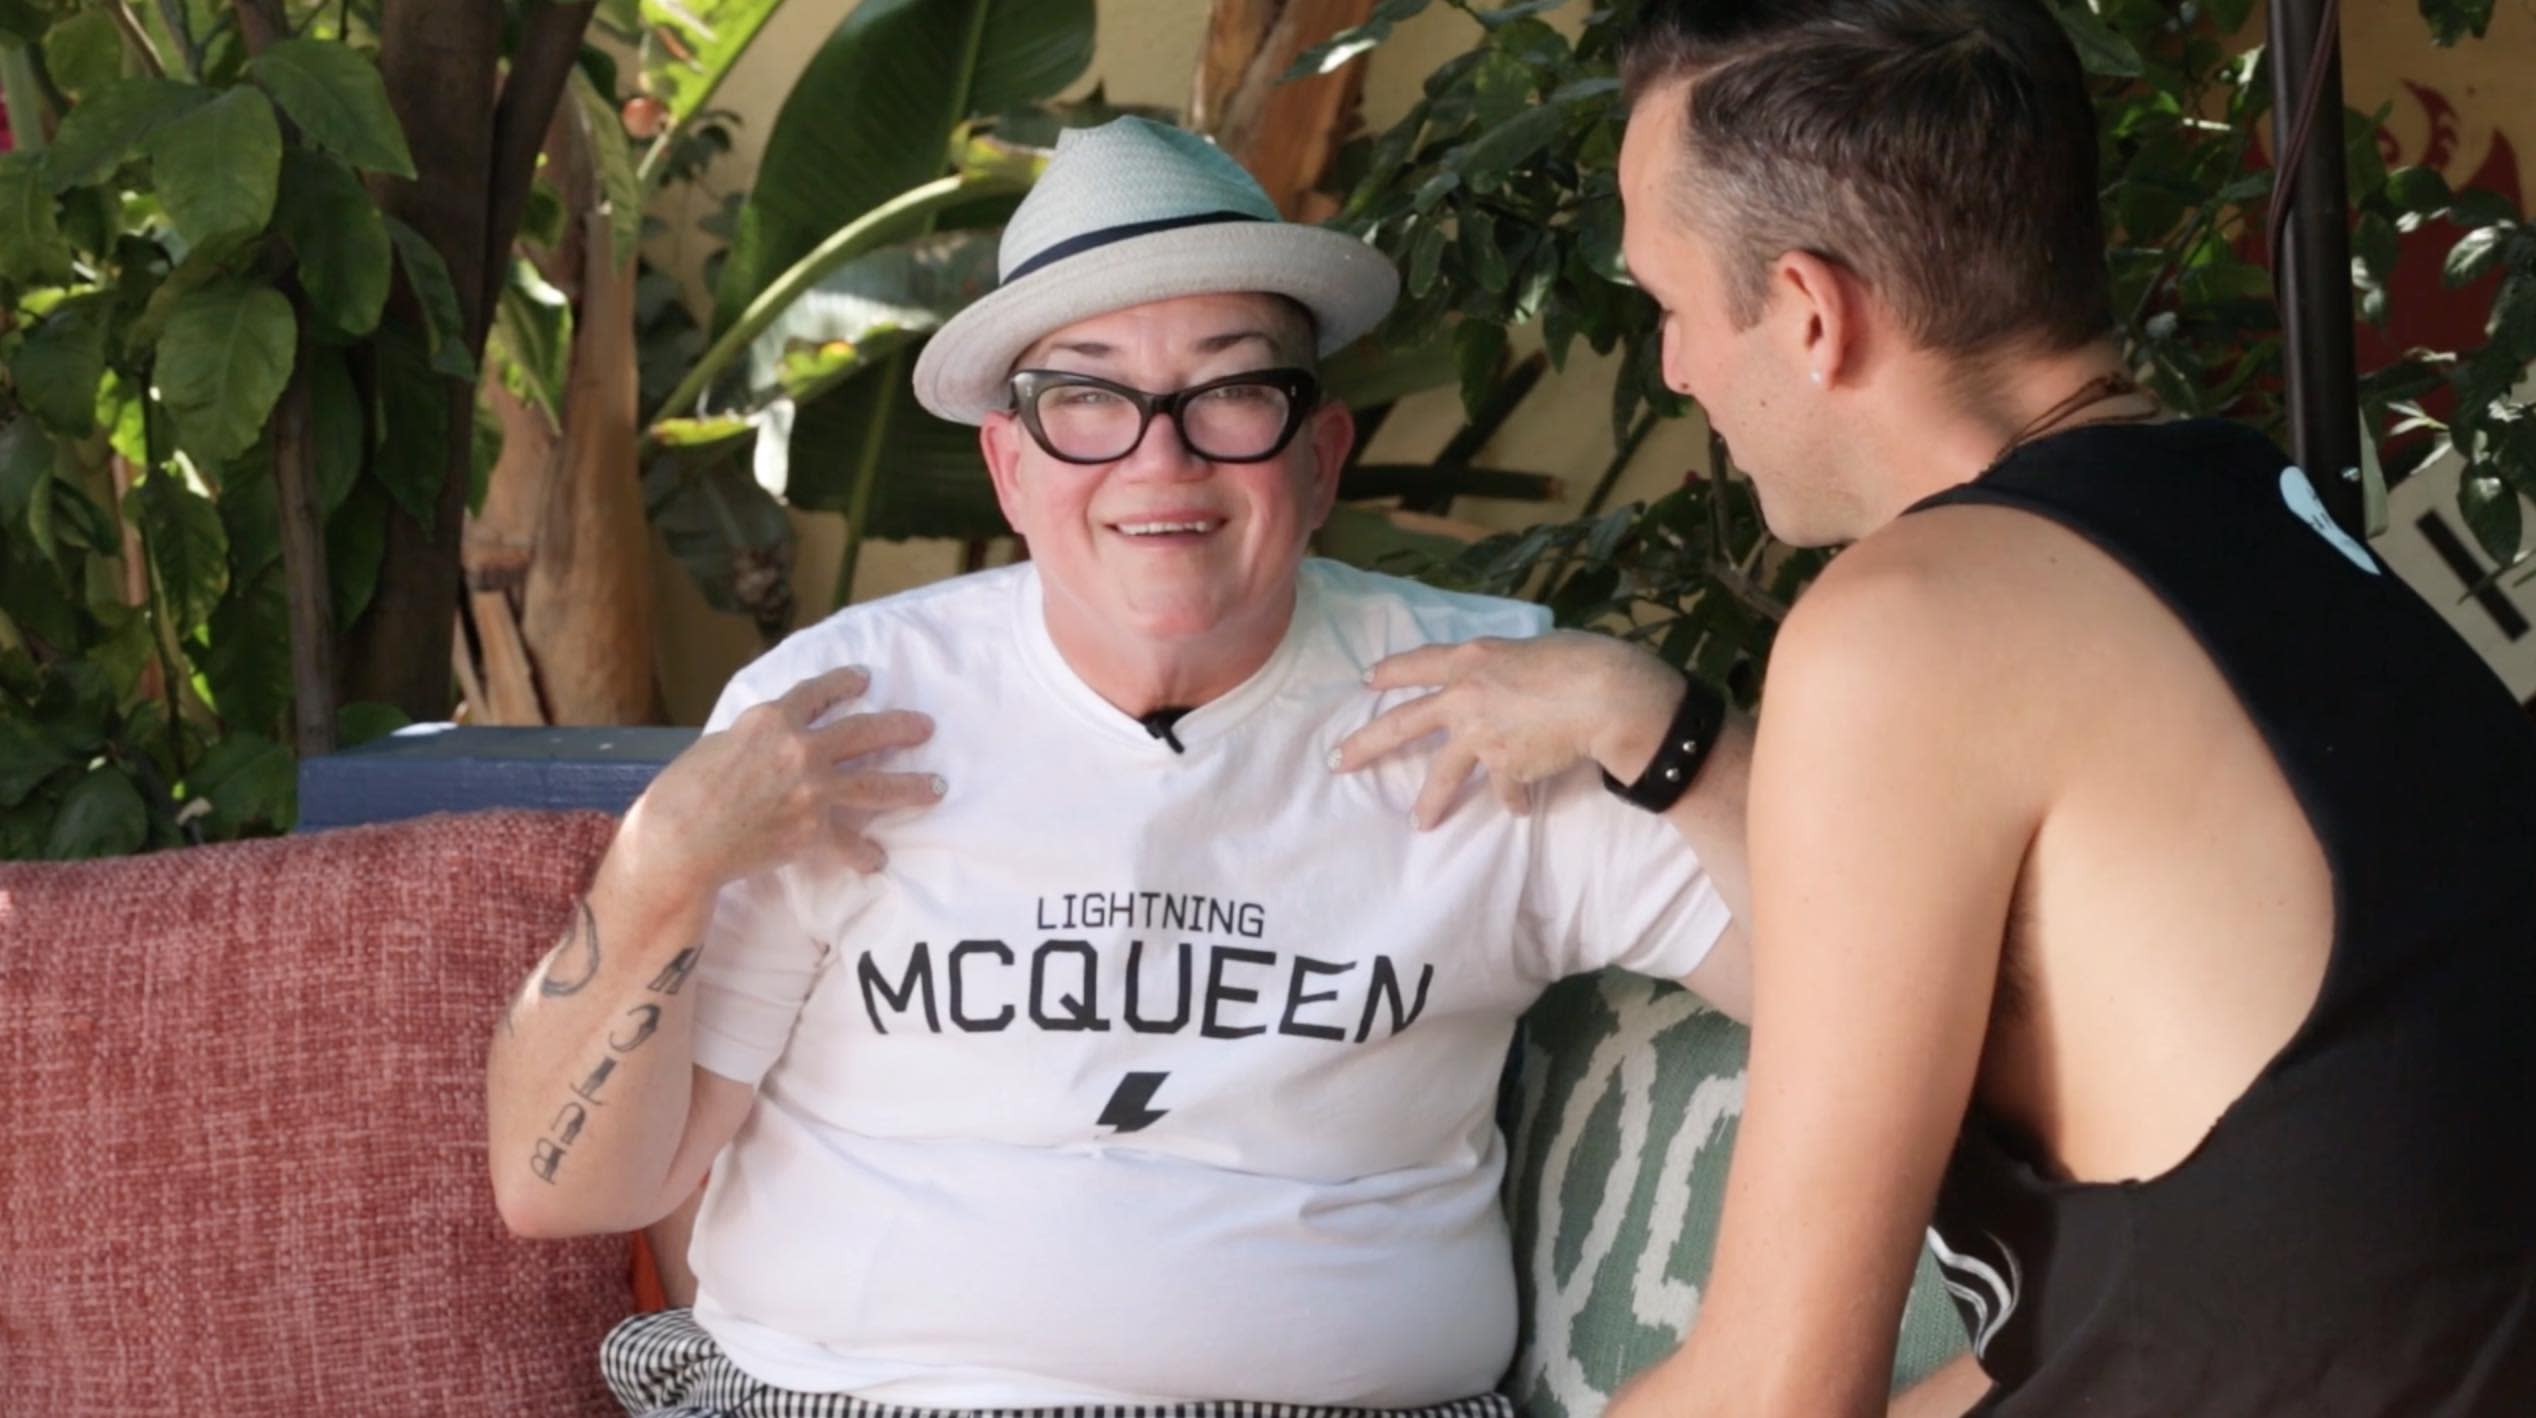 From the vault - Lea DeLaria: There is enough for us all to be treated equally